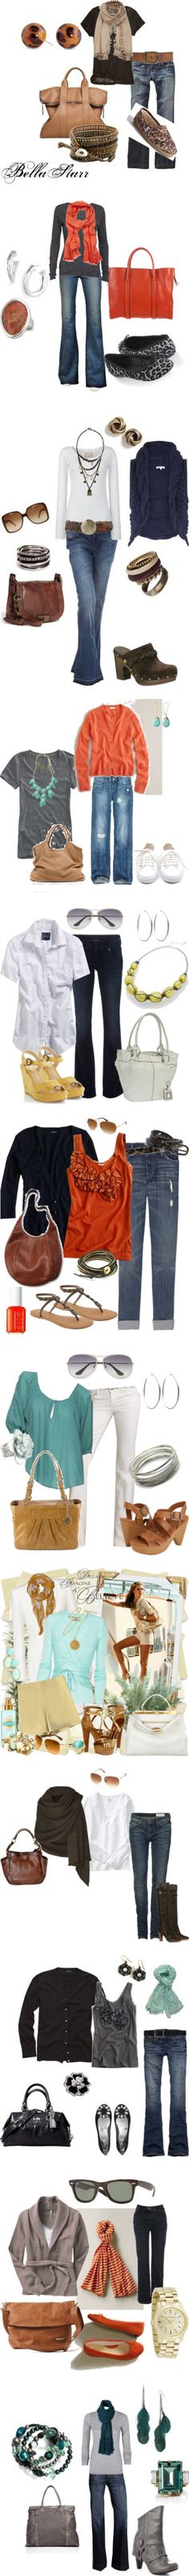 outfit ideas for the fall..yay!